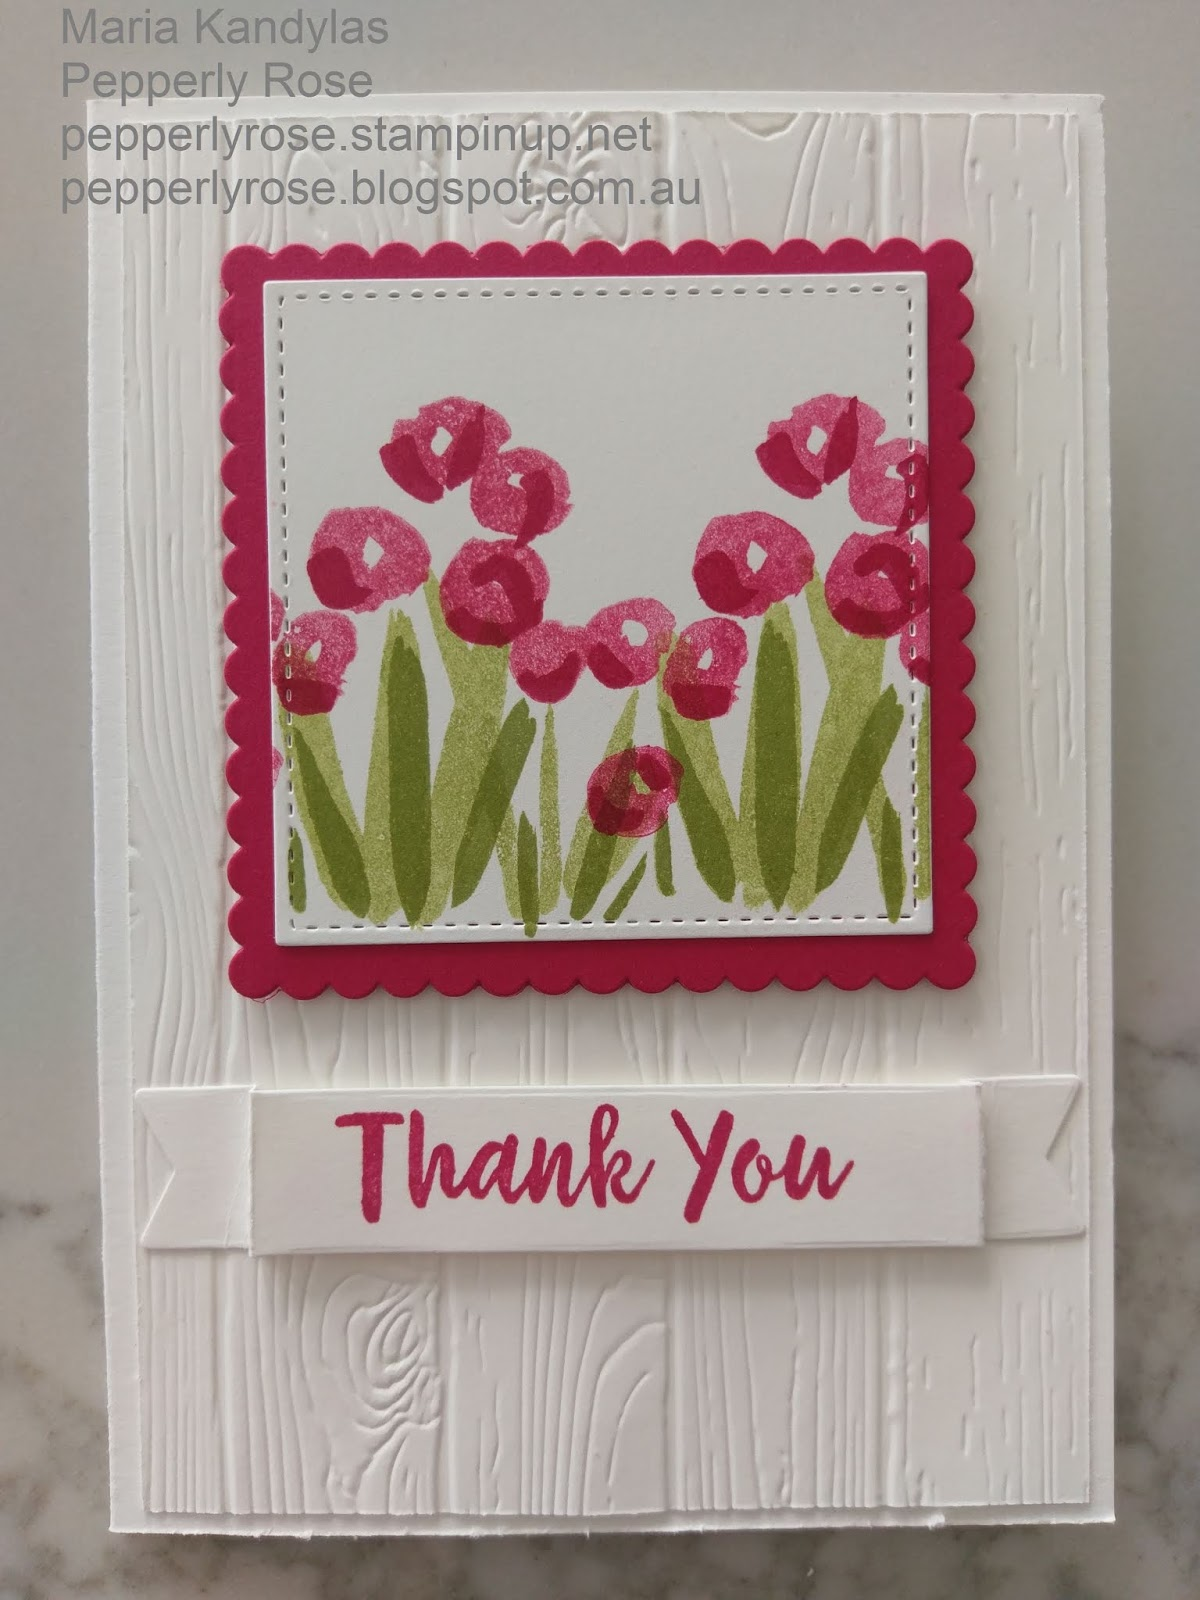 Pepperly Rose Maria Kandylas Independent Stampin Up